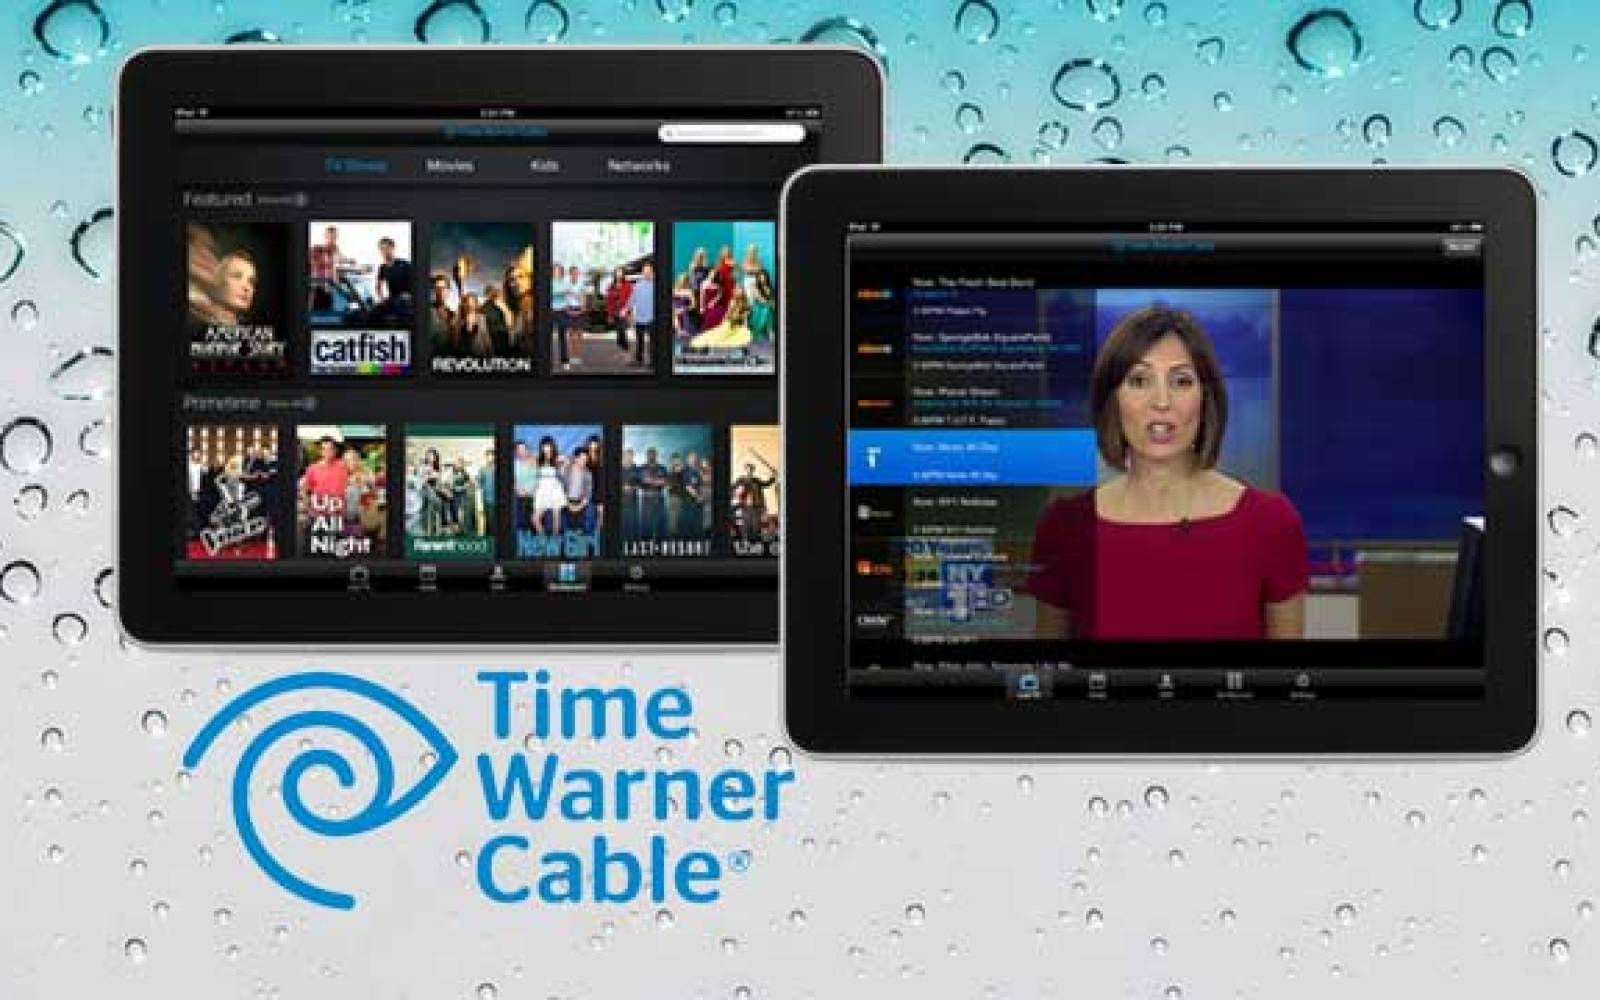 Time Warner Cable announces out-of-home live TV streaming coming to iOS devices tomorrow